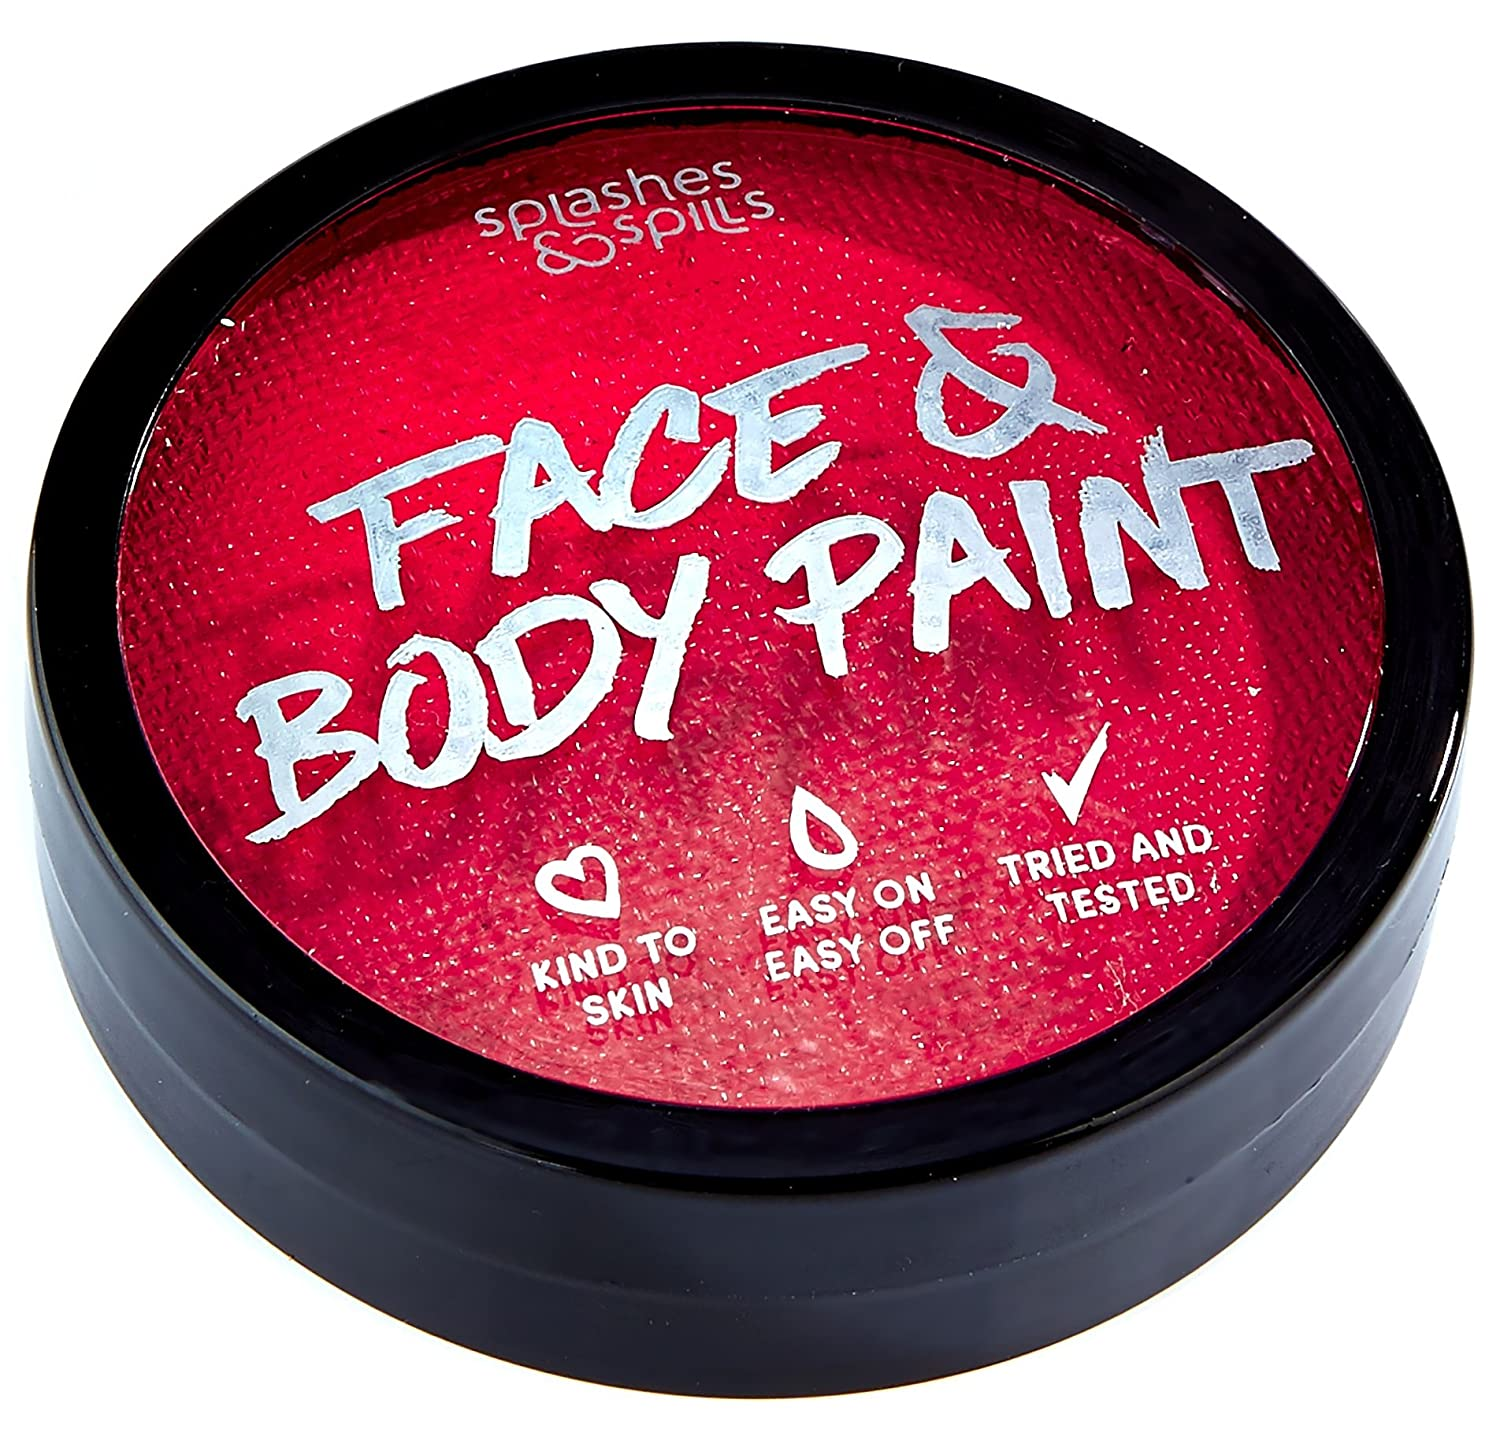 Water Activated Face and Body Paint - Red, 18g Cake Tub - Pretend Costume and Dress Up Makeup by Splashes & Spills